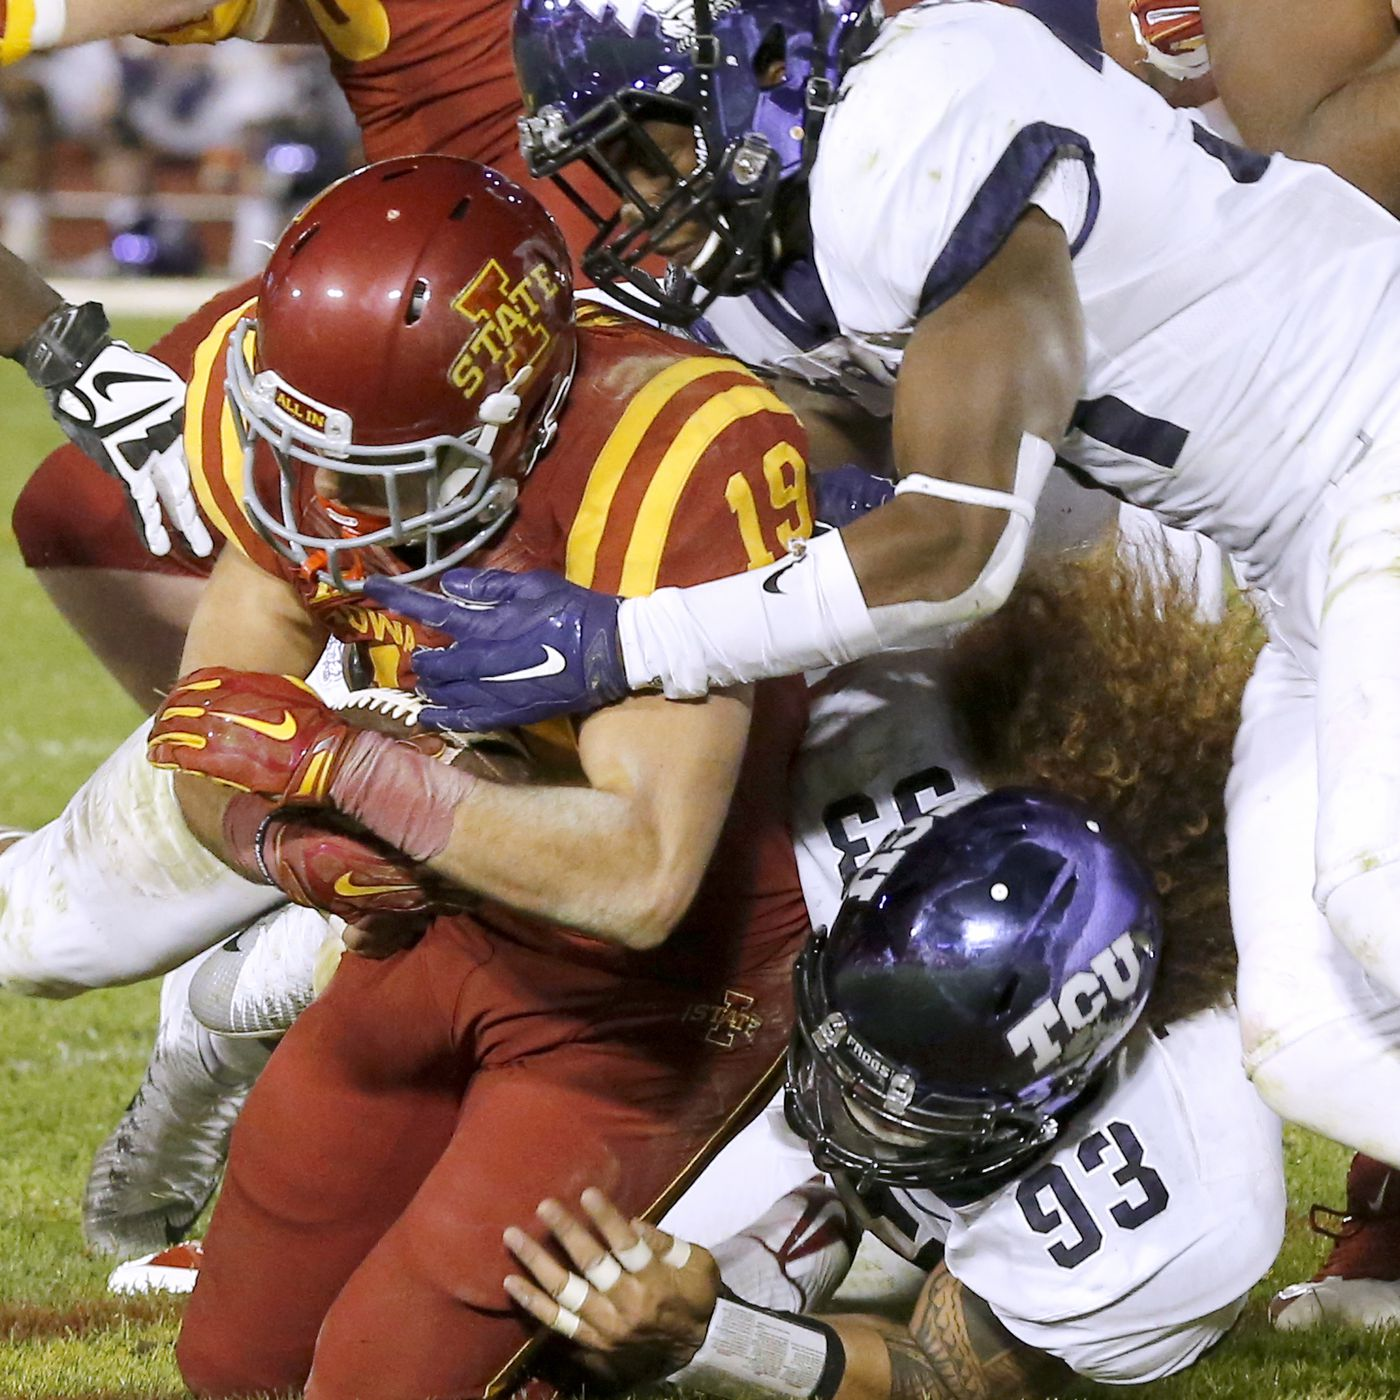 be4c283fde7f6 Iowa State Cyclones vs. TCU Horned Frogs Preview - Wide Right ...